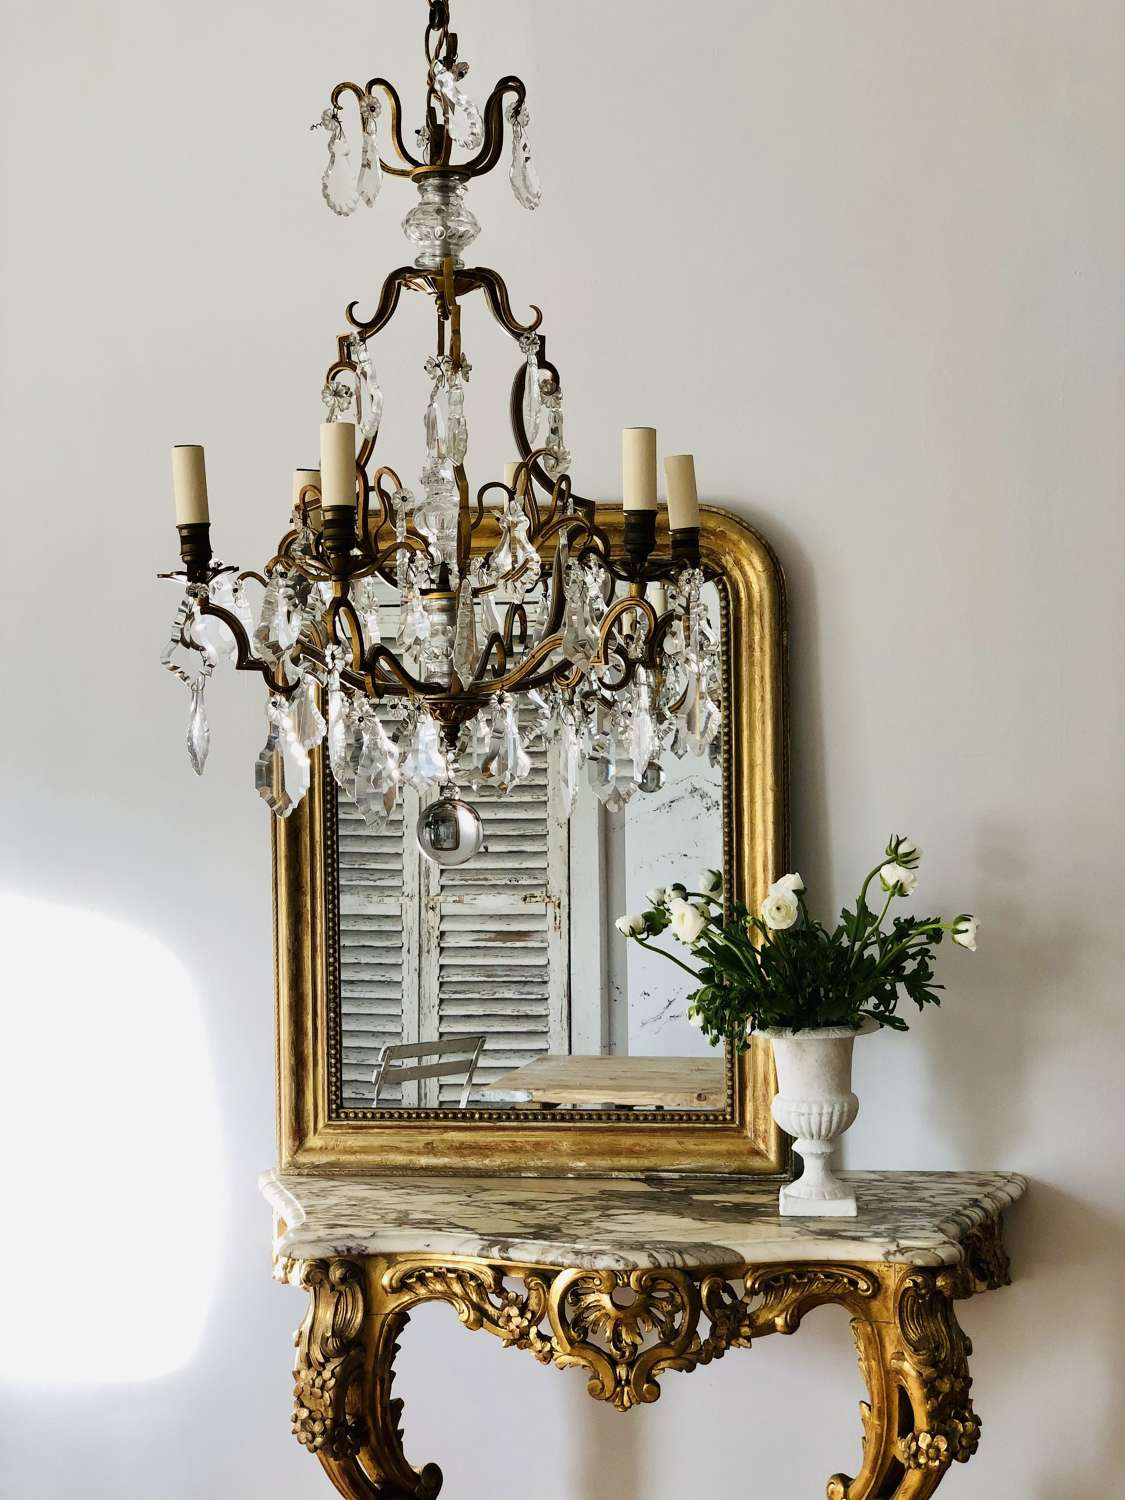 Large antique French crystal cage chandelier - rewired